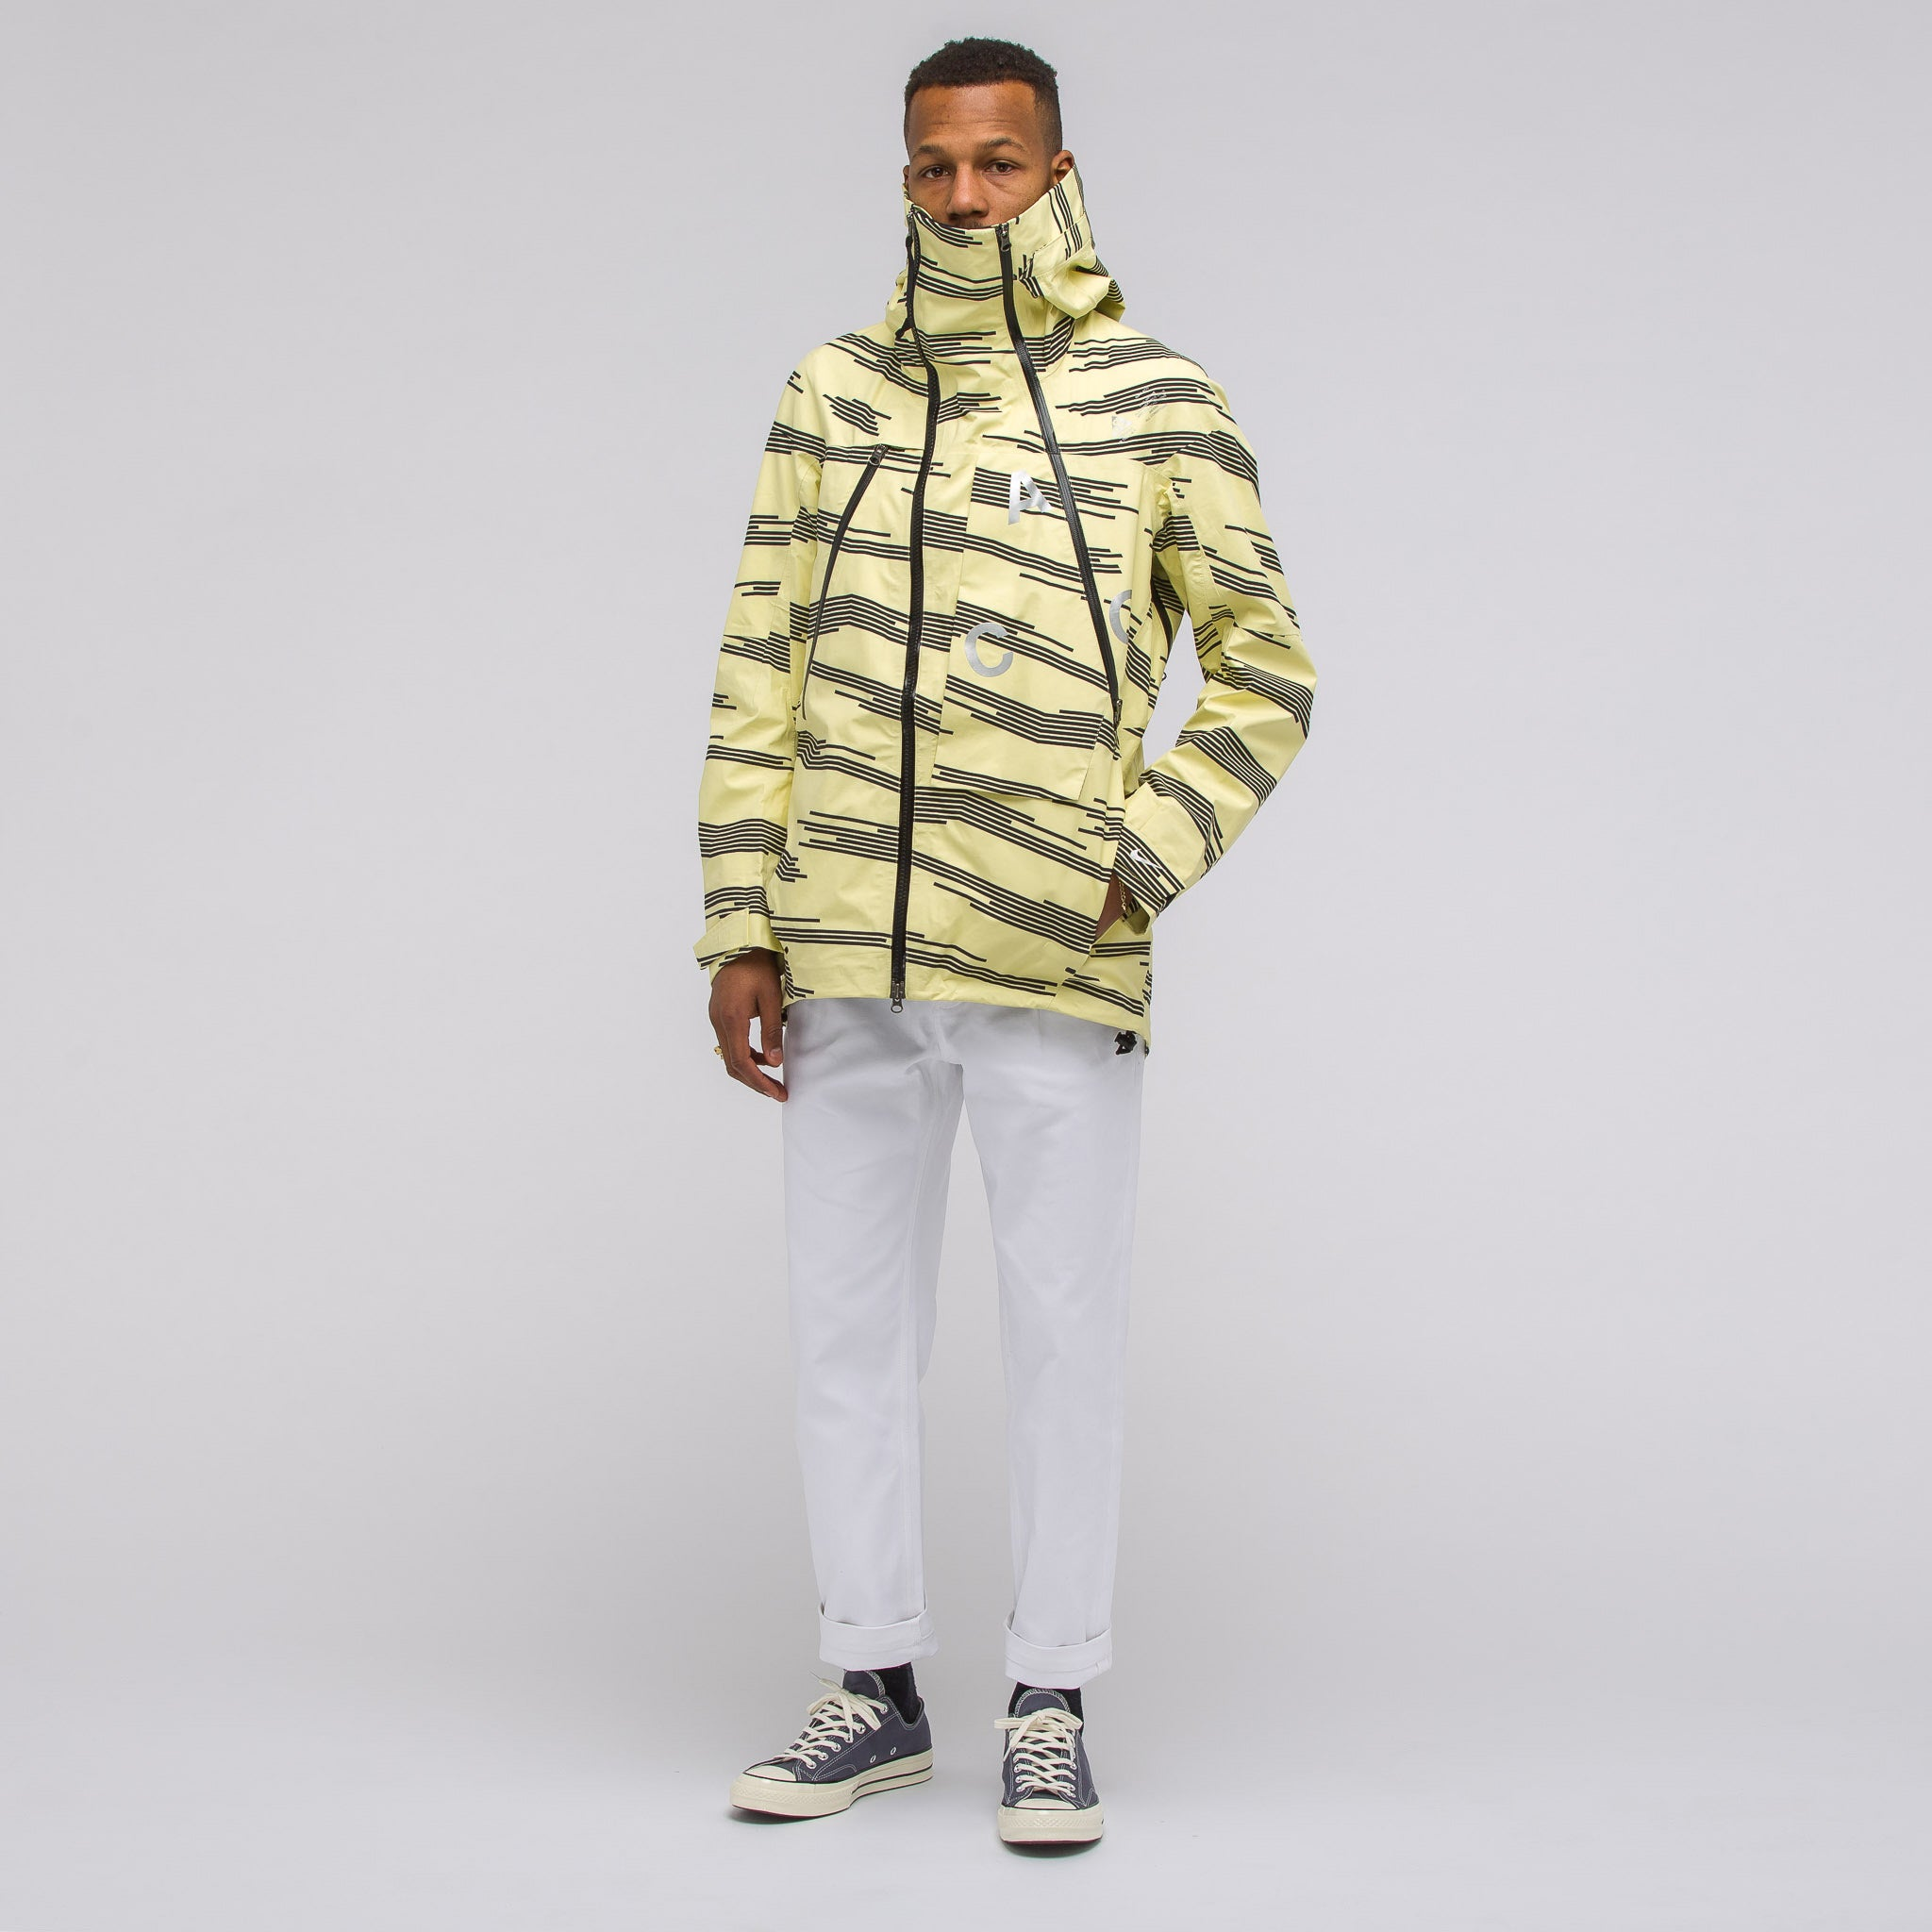 ACG Alpine Jacket in Citrine Dust